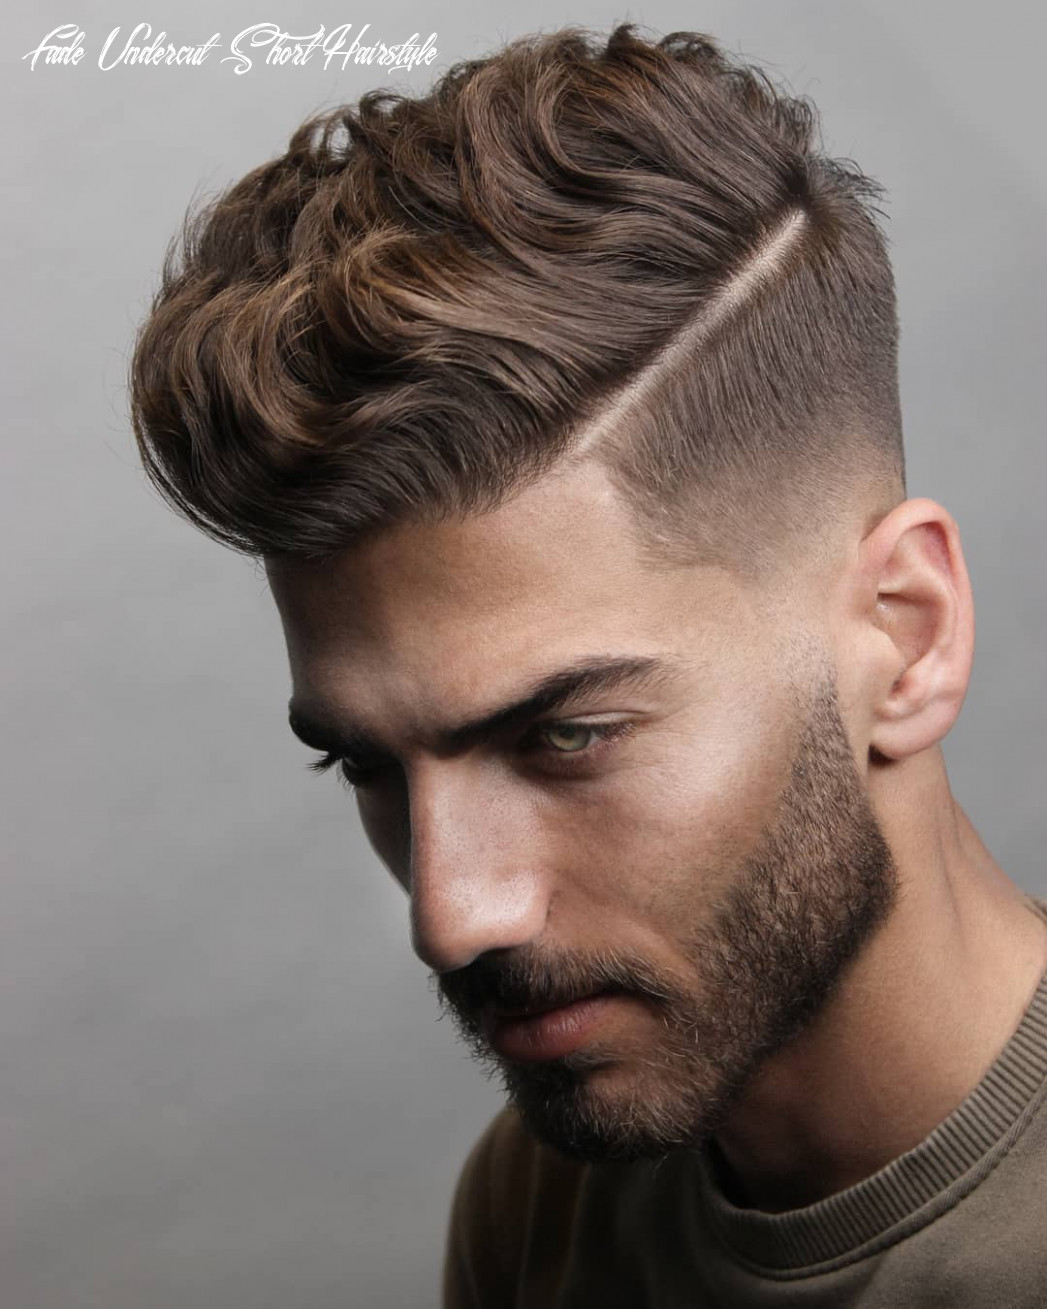 10 short on sides long on top haircuts for men | man haircuts fade undercut short hairstyle